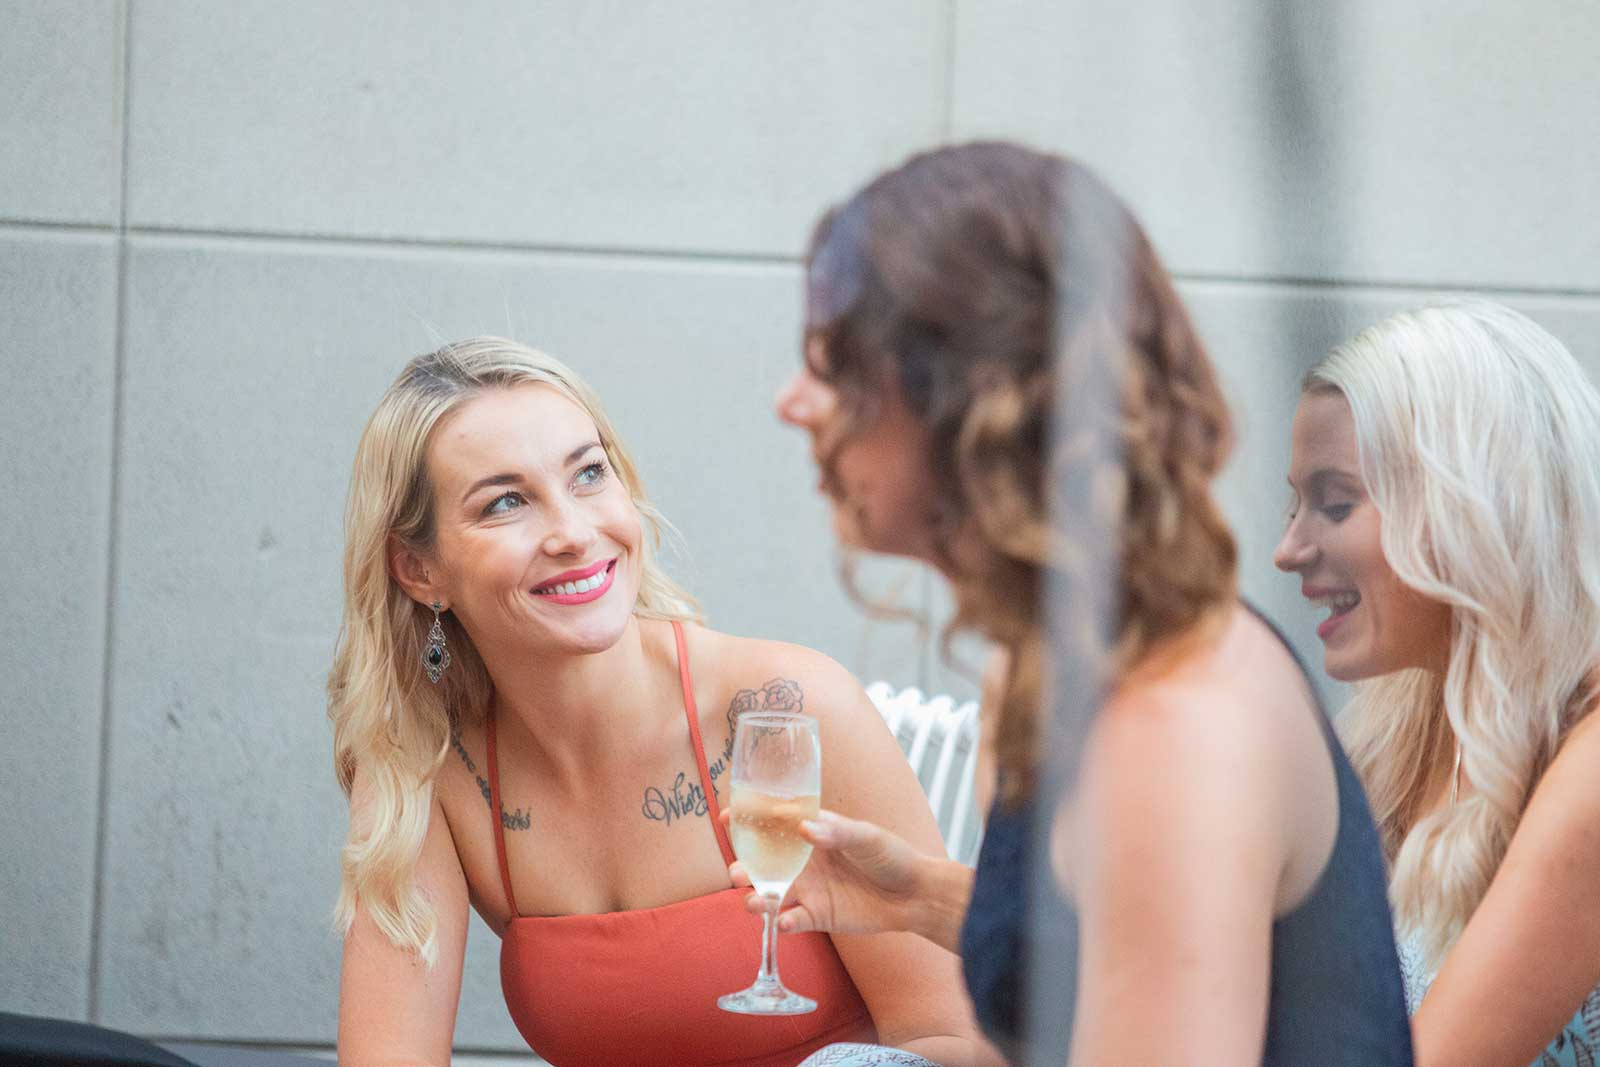 A girls in a dress smiles at friends as they drink champagne